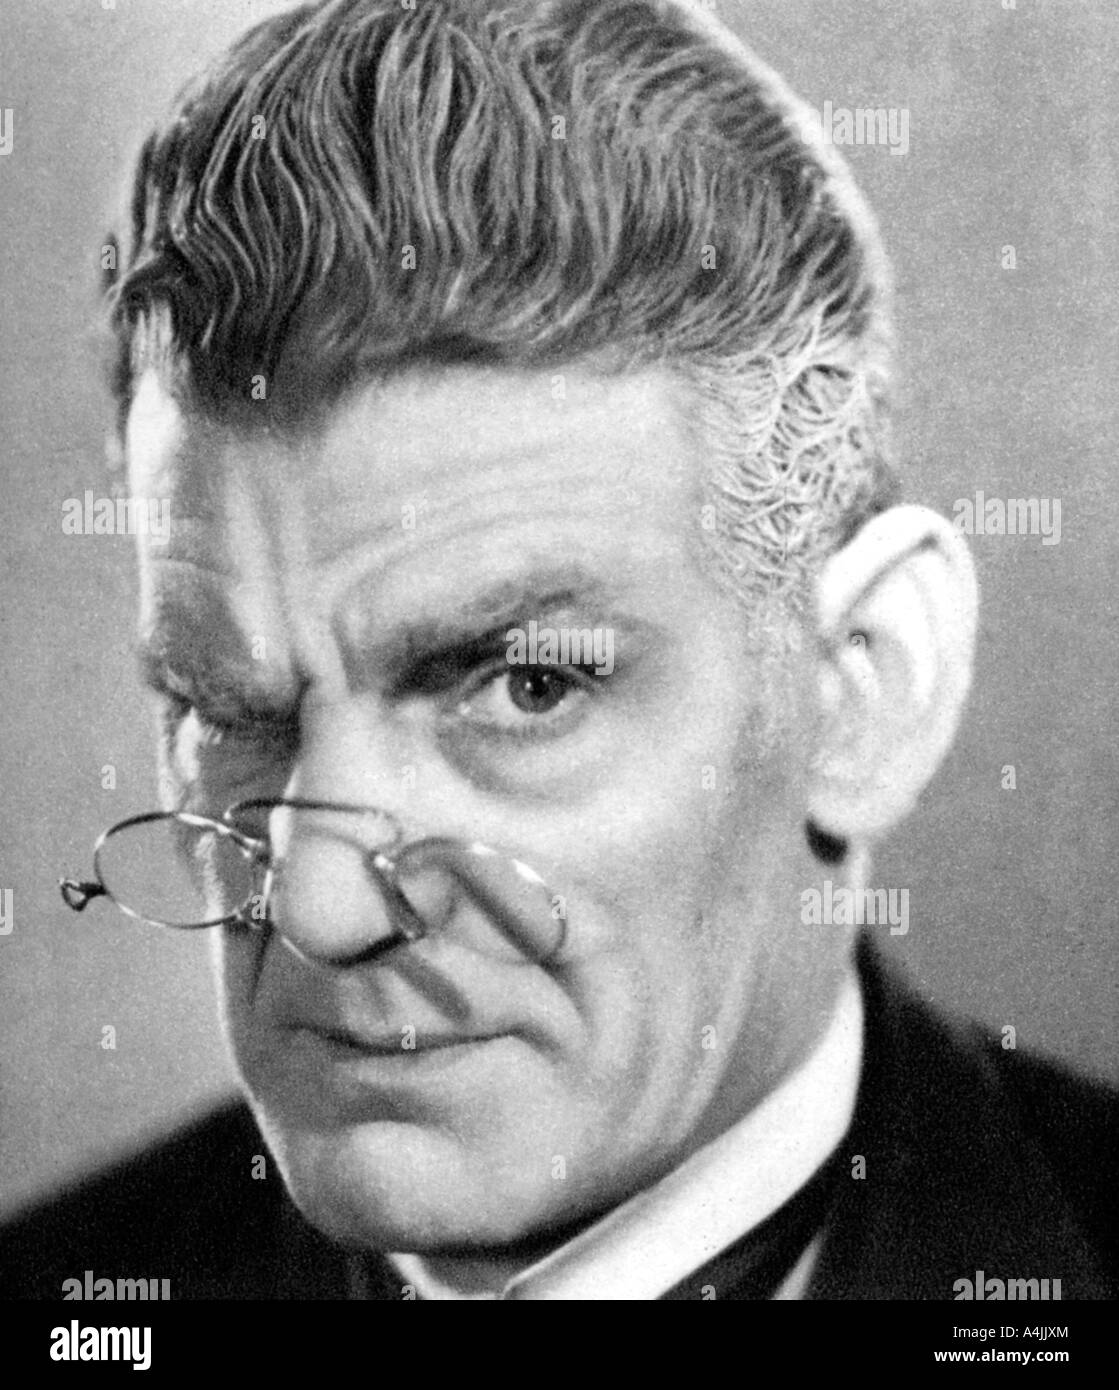 Will Hay Black and White Stock Photos & Images - Alamy